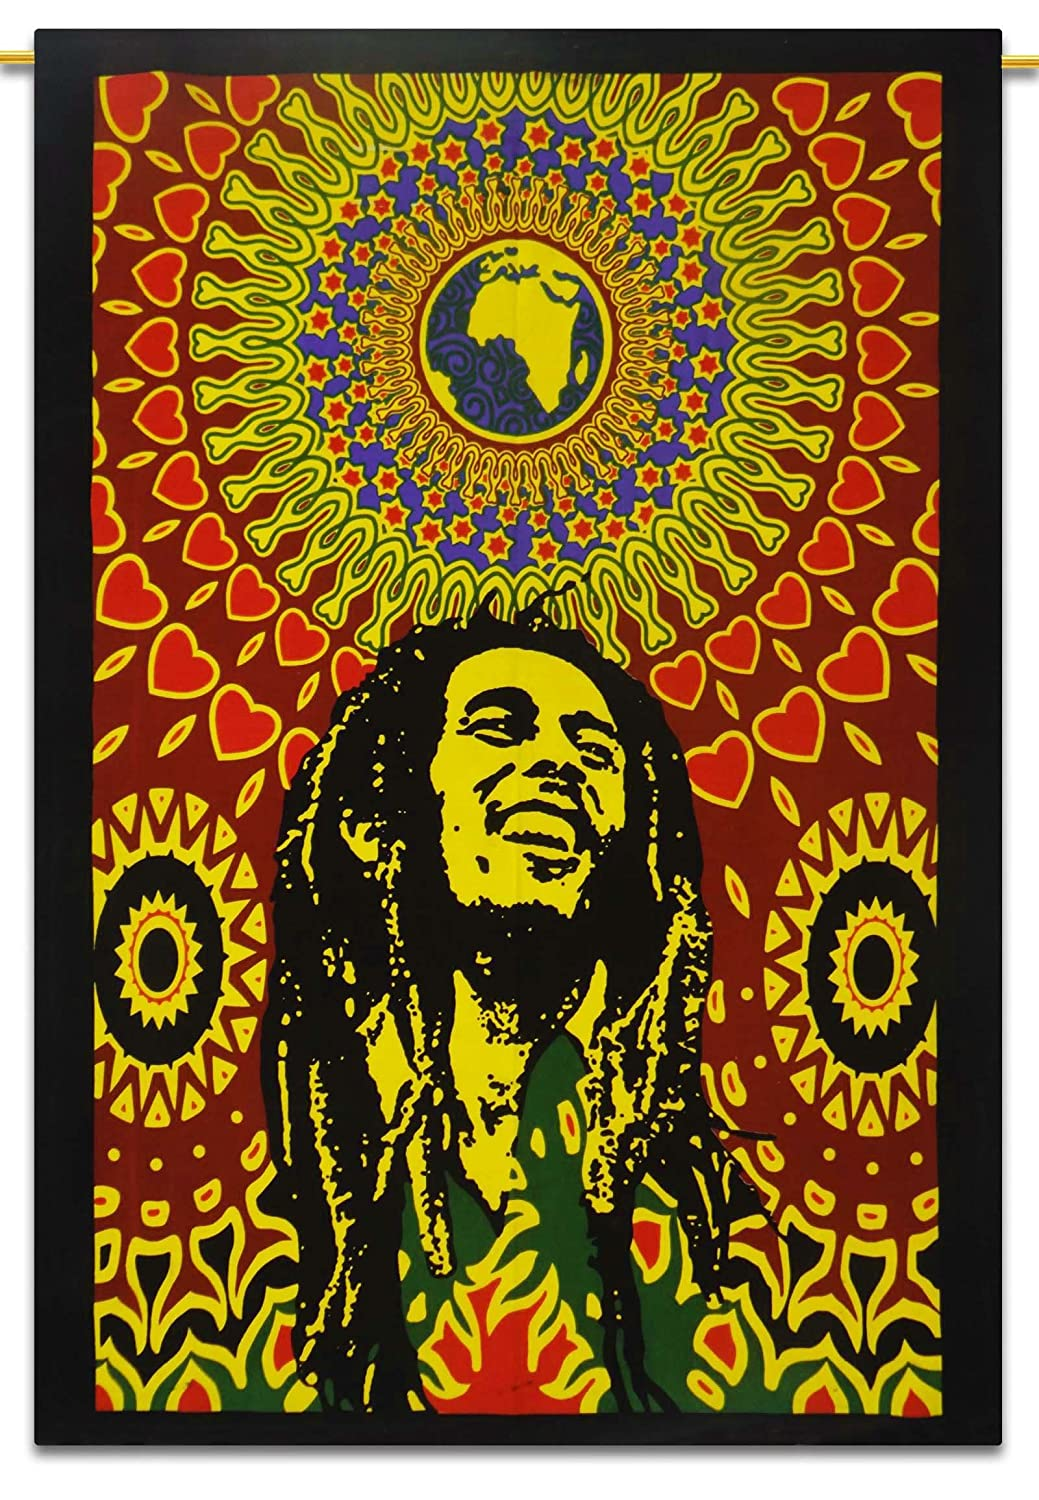 Bob Marley Cotton Indian Wall Hanging Tapestry Poster Size Muticolour Throw 42X30 Inches with Sequins